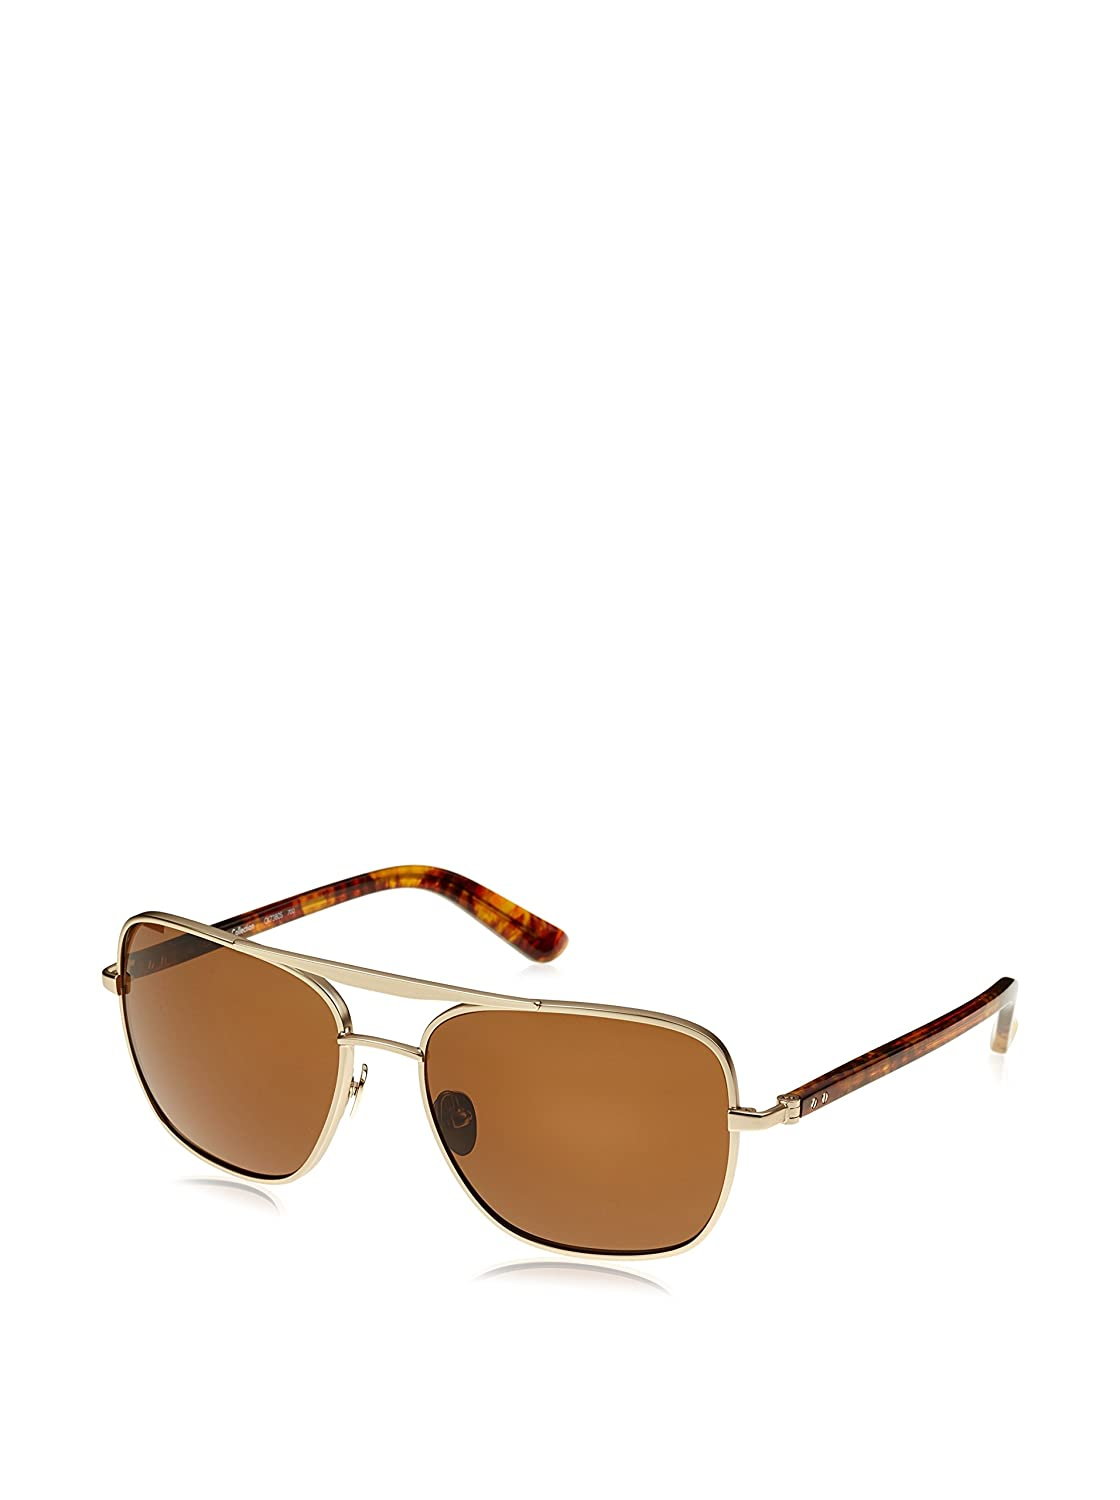 Calvin Klein CK7380S gafas de sol, Marrón (Light Gold/Brown), única (Talla del Fabricante: One Size) Unisex Adulto